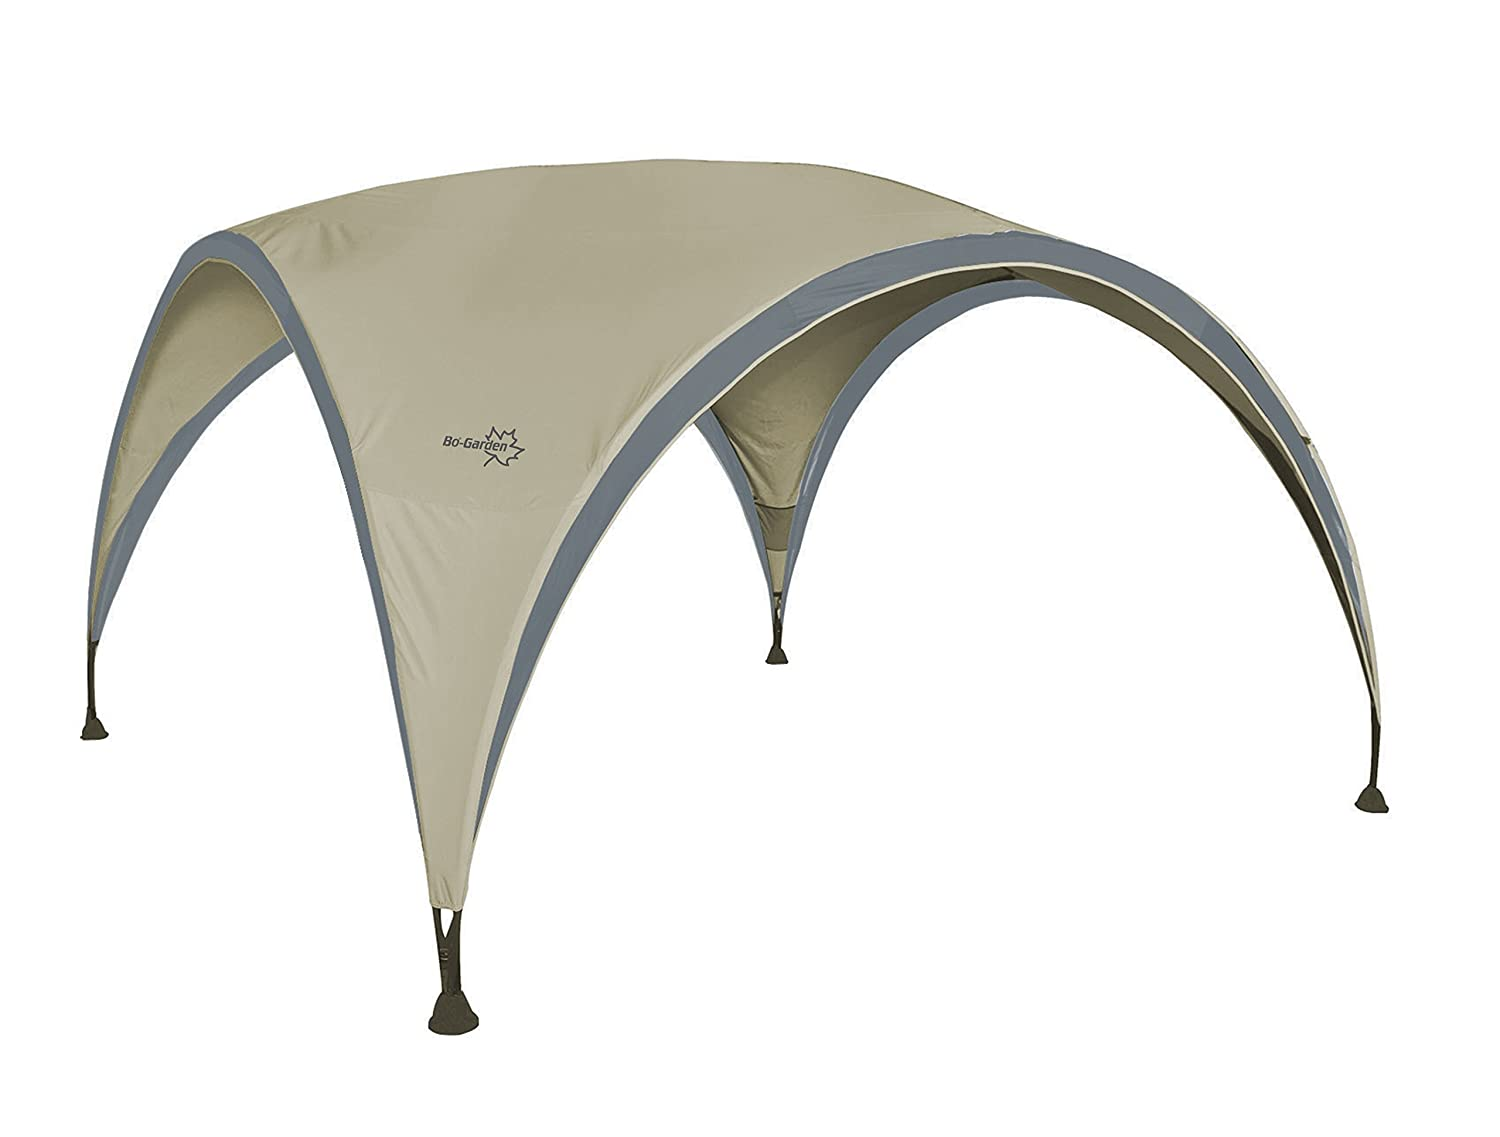 Bo Garden Party Shelter Medium 1500 mm c.d.a 370 x 370 x 239 cm con ventilaci/ón